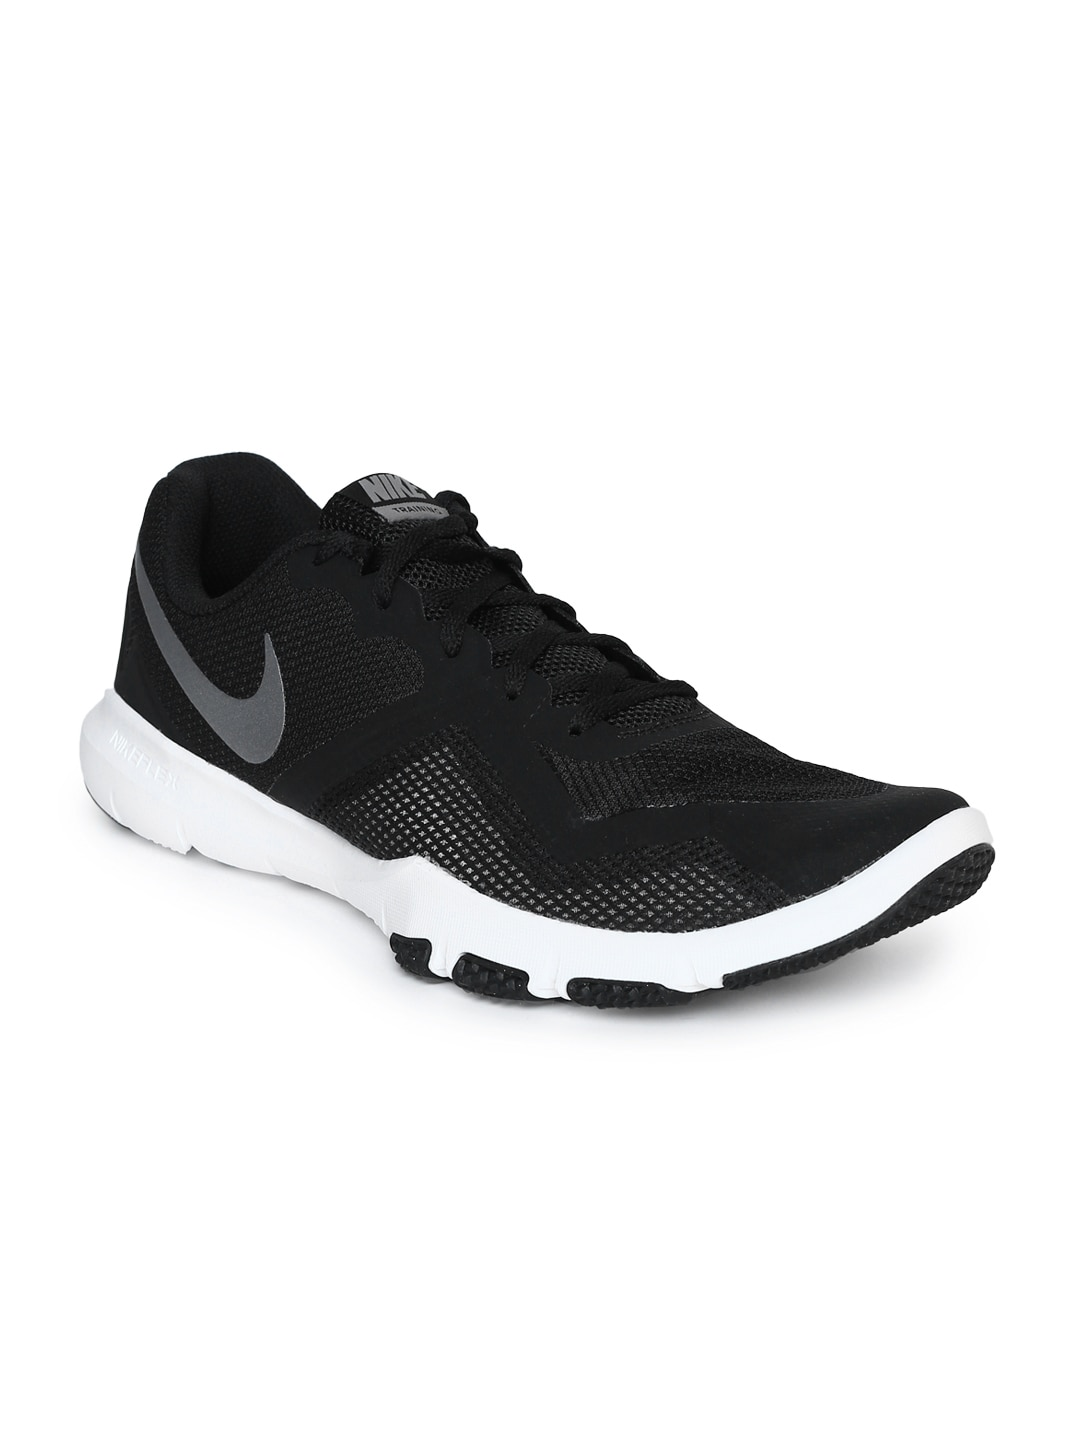 d1dcaf3443610 Nike Sport Shoe - Buy Nike Sport Shoes At Best Price Online